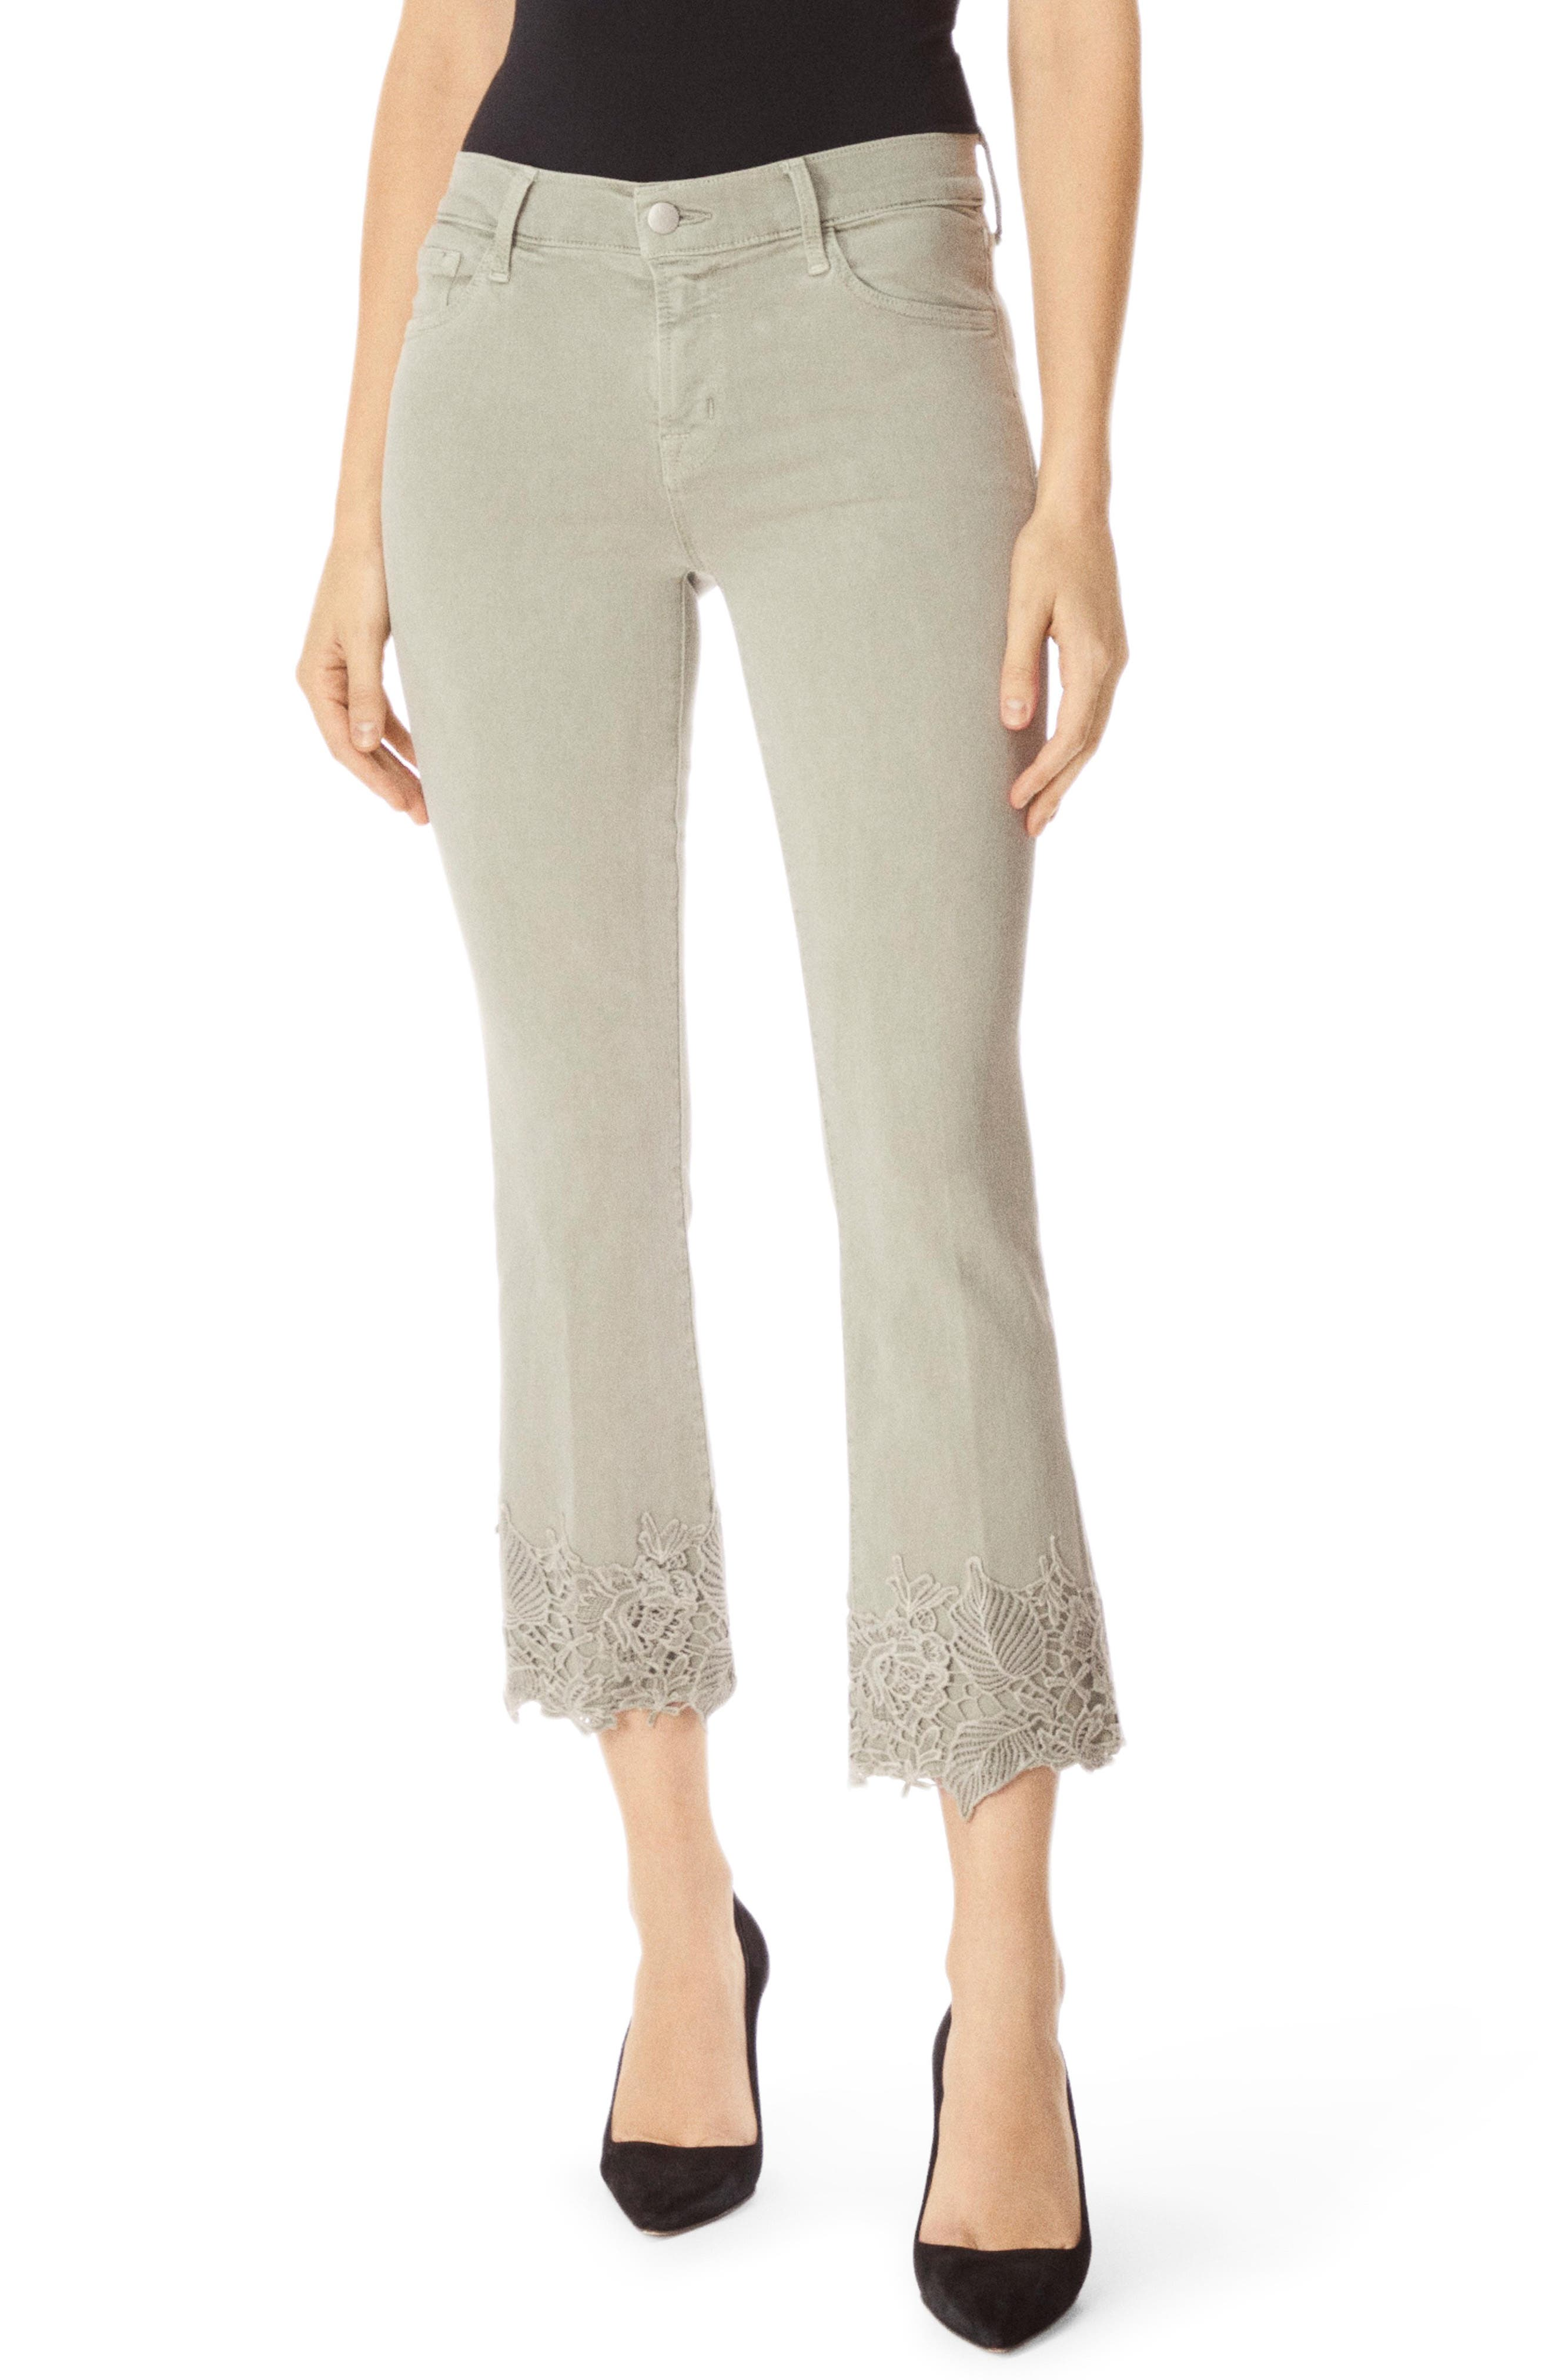 J BRAND Selena Crop Bootcut Jeans, Main, color, FADED GIBSON